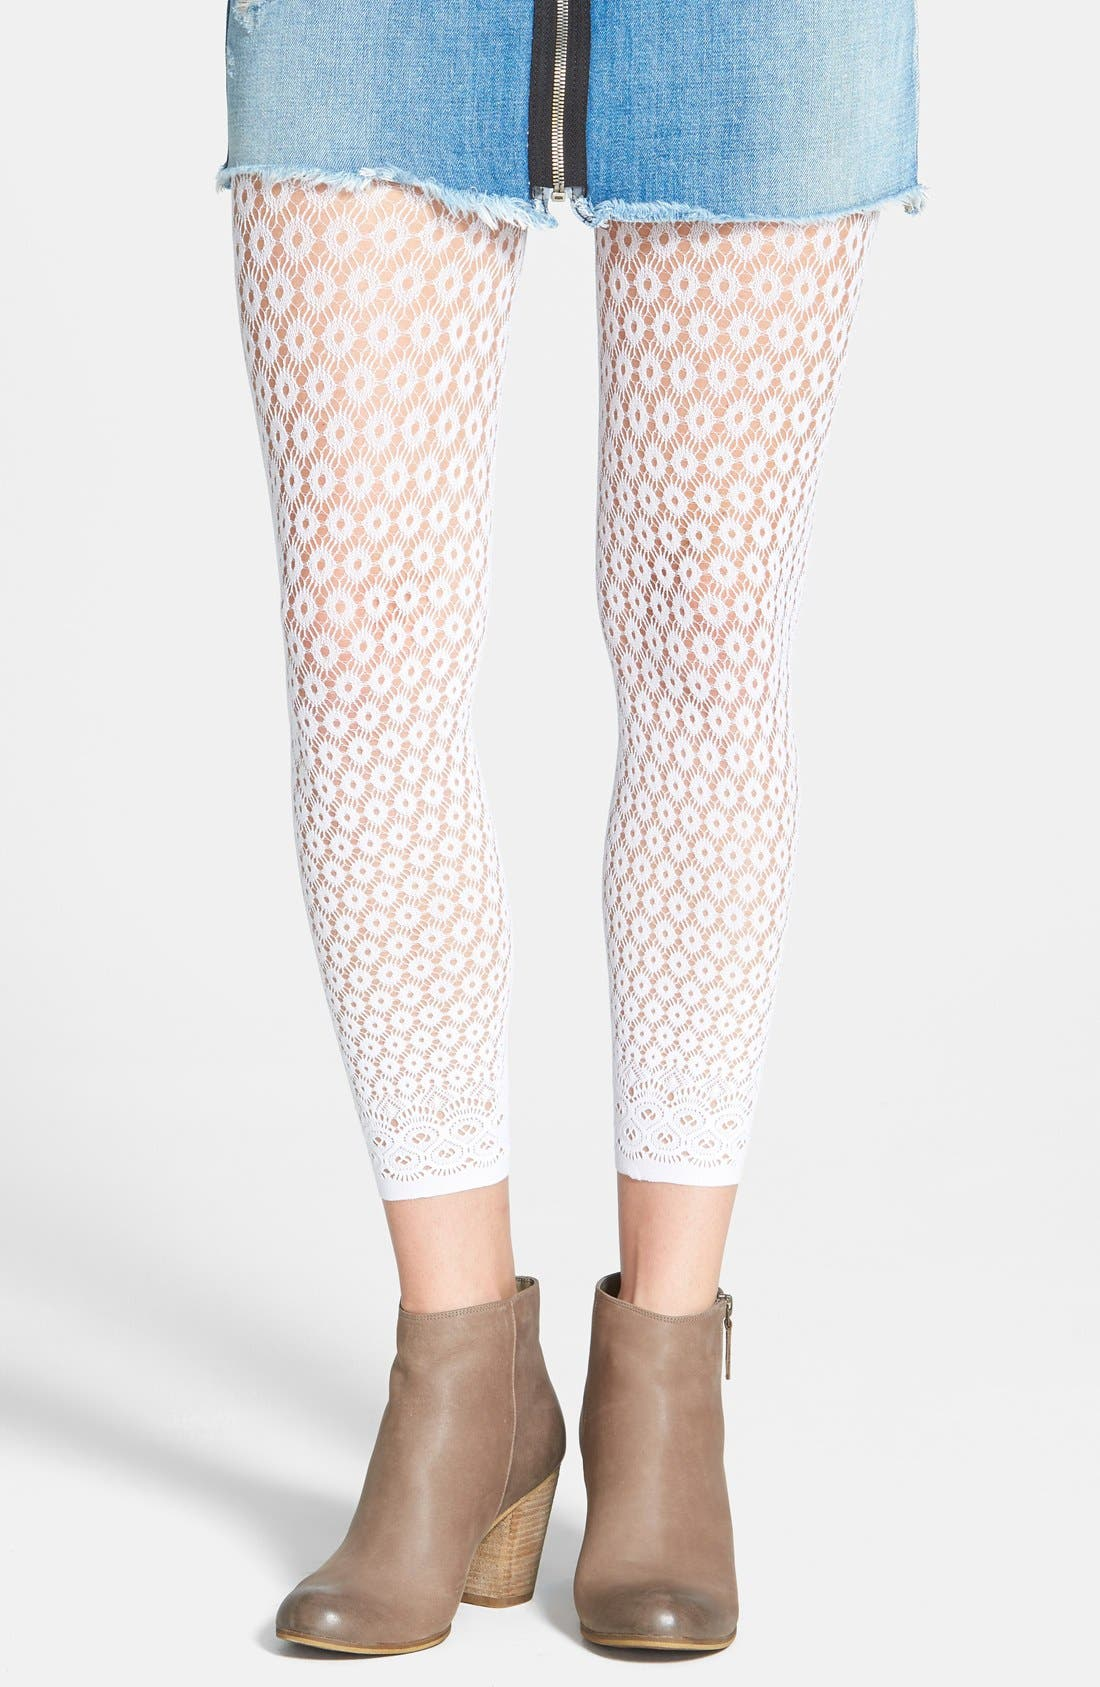 Alternate Image 1 Selected - DKNY 'Eyelet Lace' Footless Tights